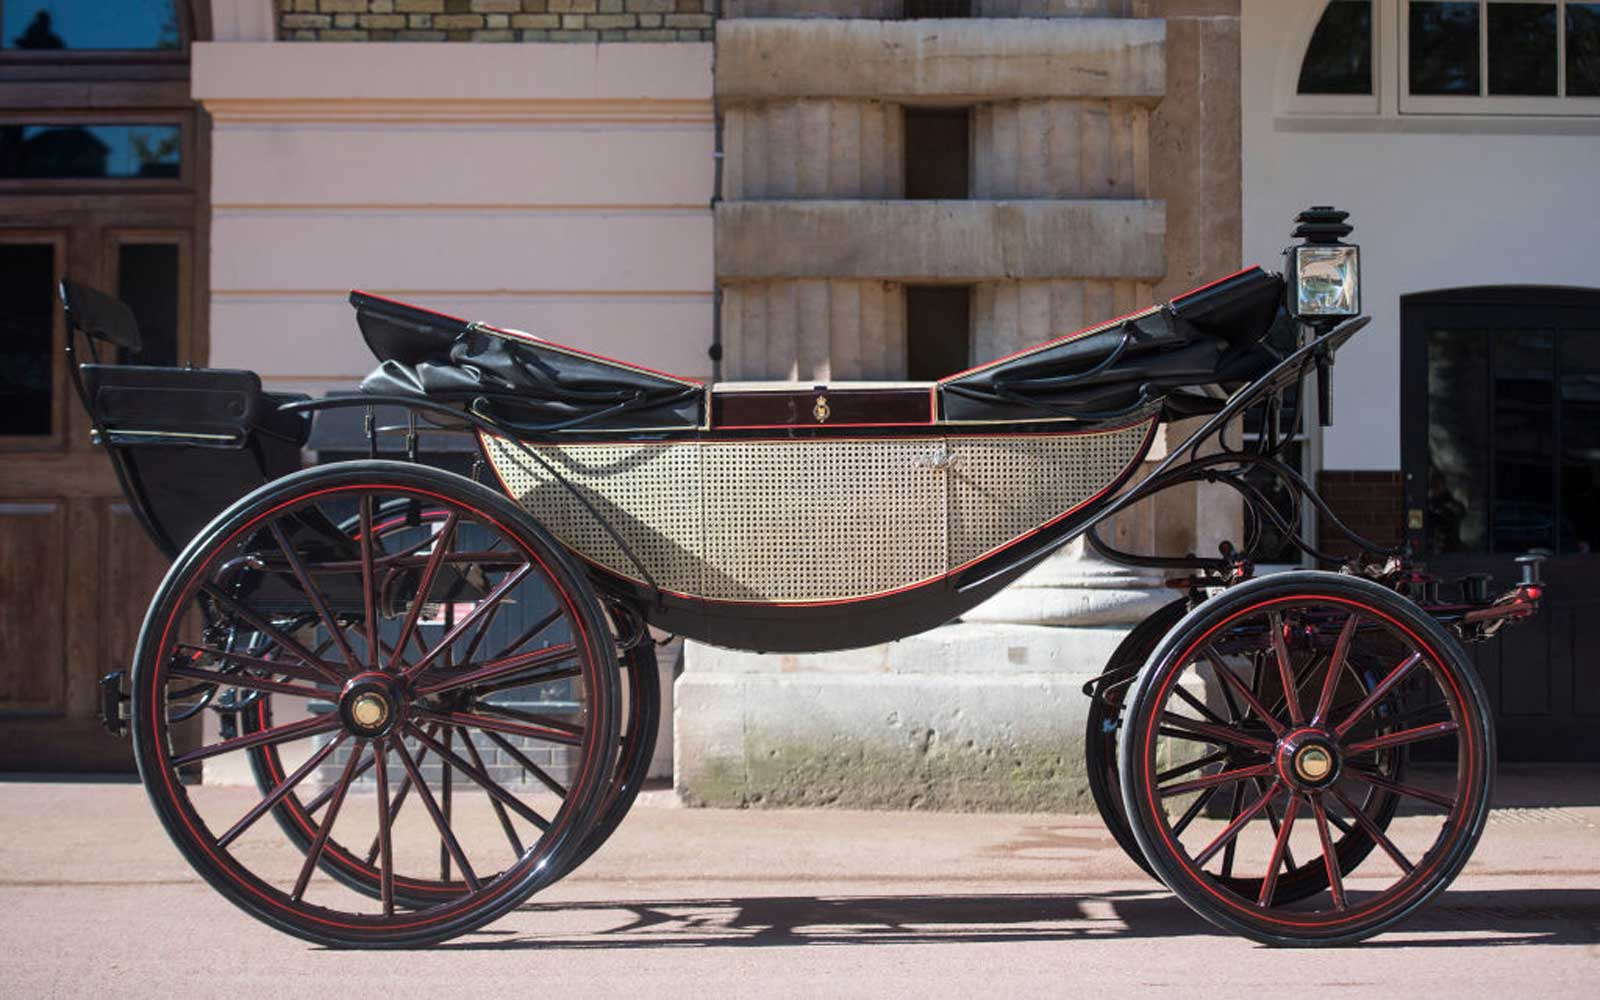 The Ascot Landau, which will be used in the case of dry weather for the wedding of Prince Harry and Meghan Markle